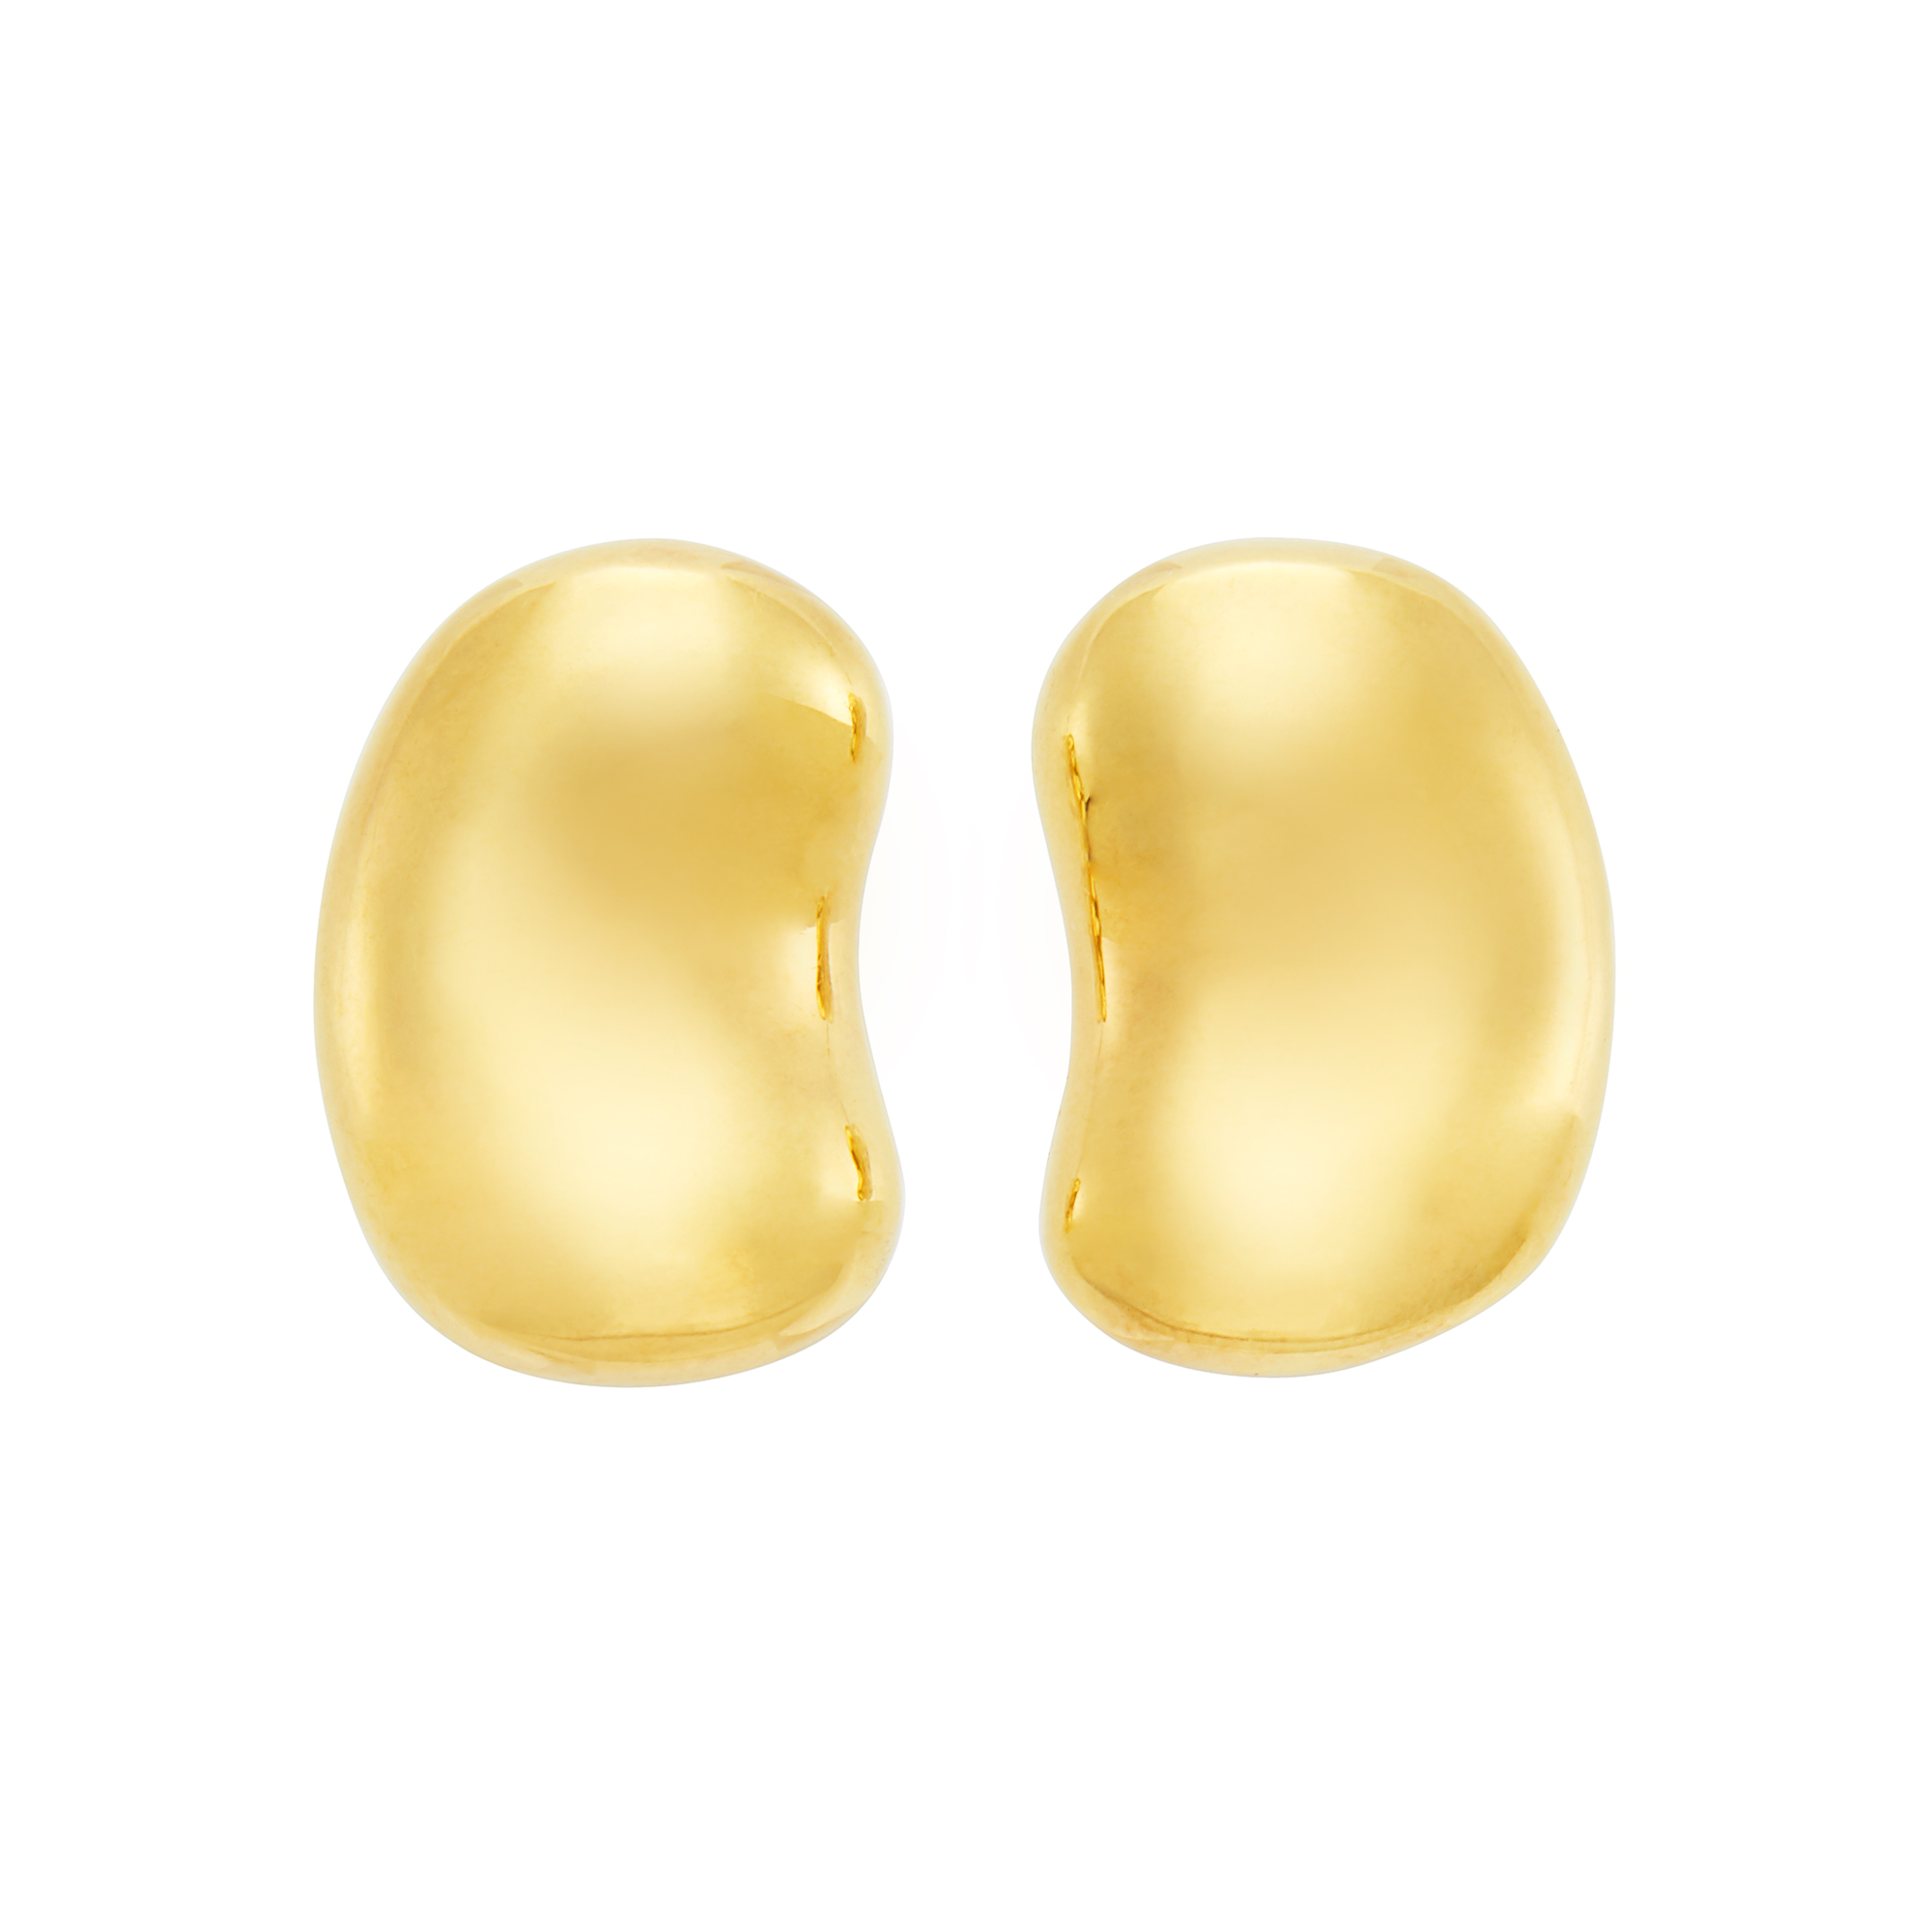 Lot image - Pair of Gold Bean Earclips, Tiffany & Co., Elsa Peretti